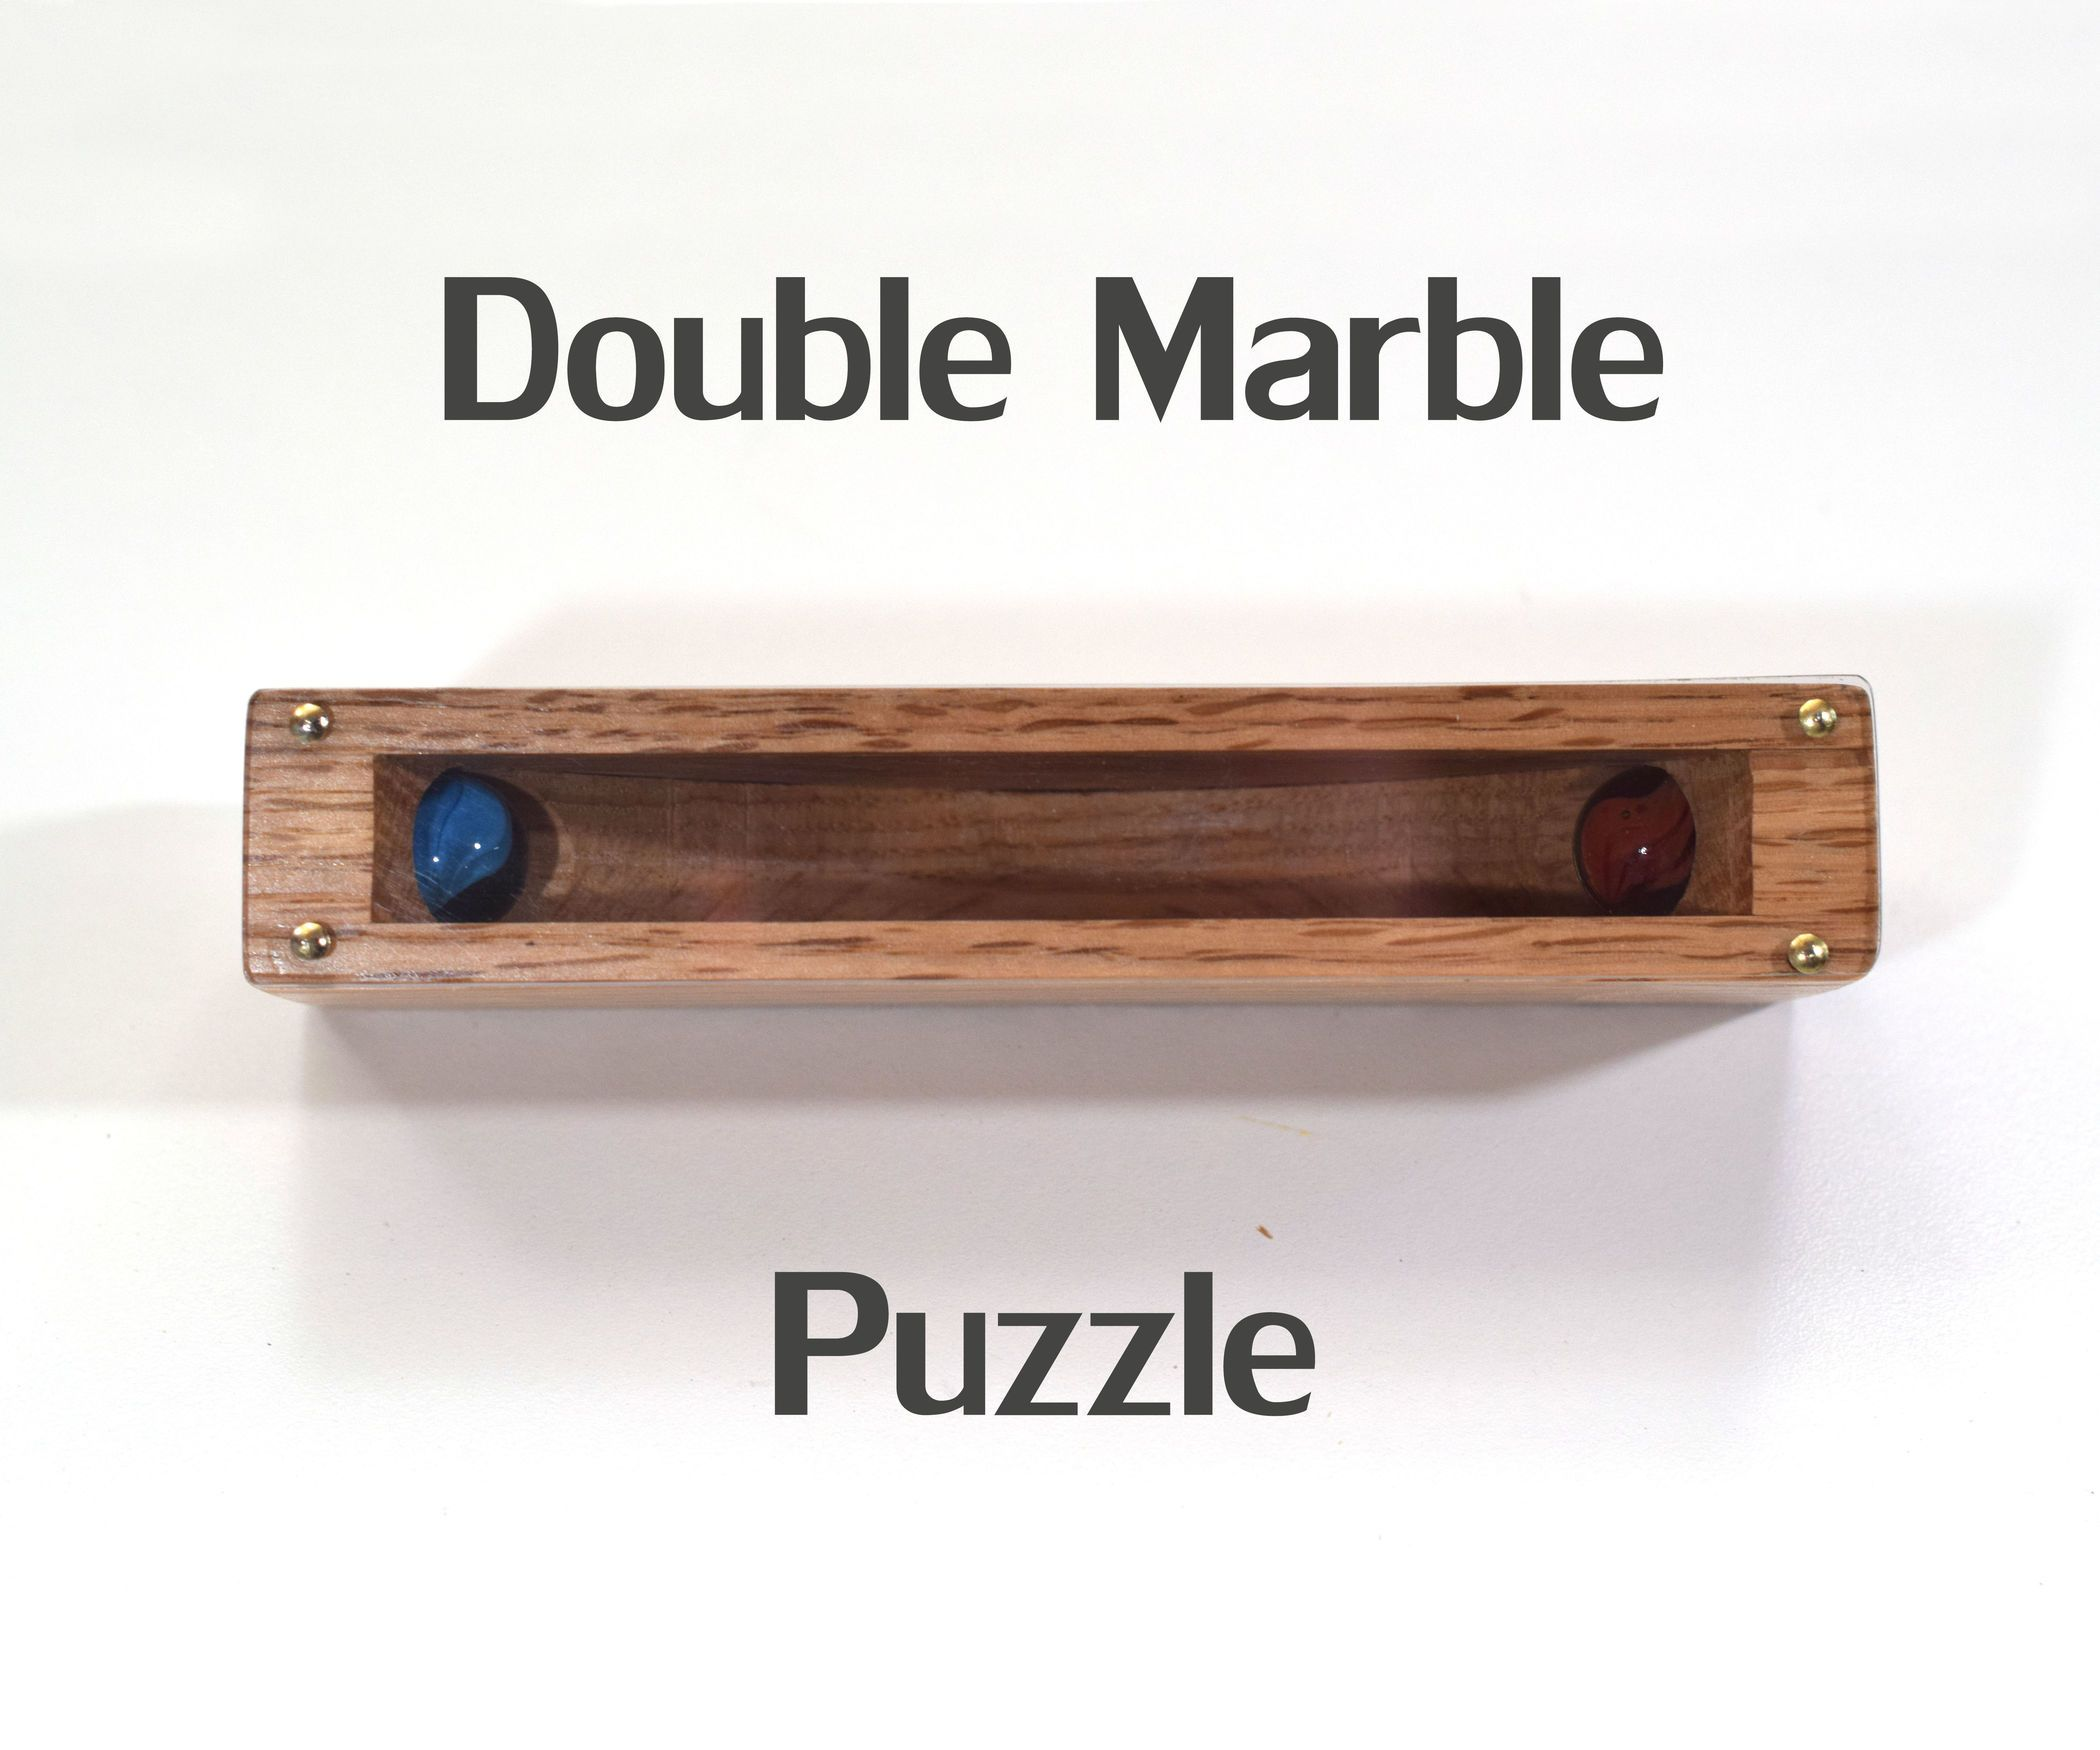 Double Marble Puzzle Wooden Toys Diy Puzzle Wood Diy